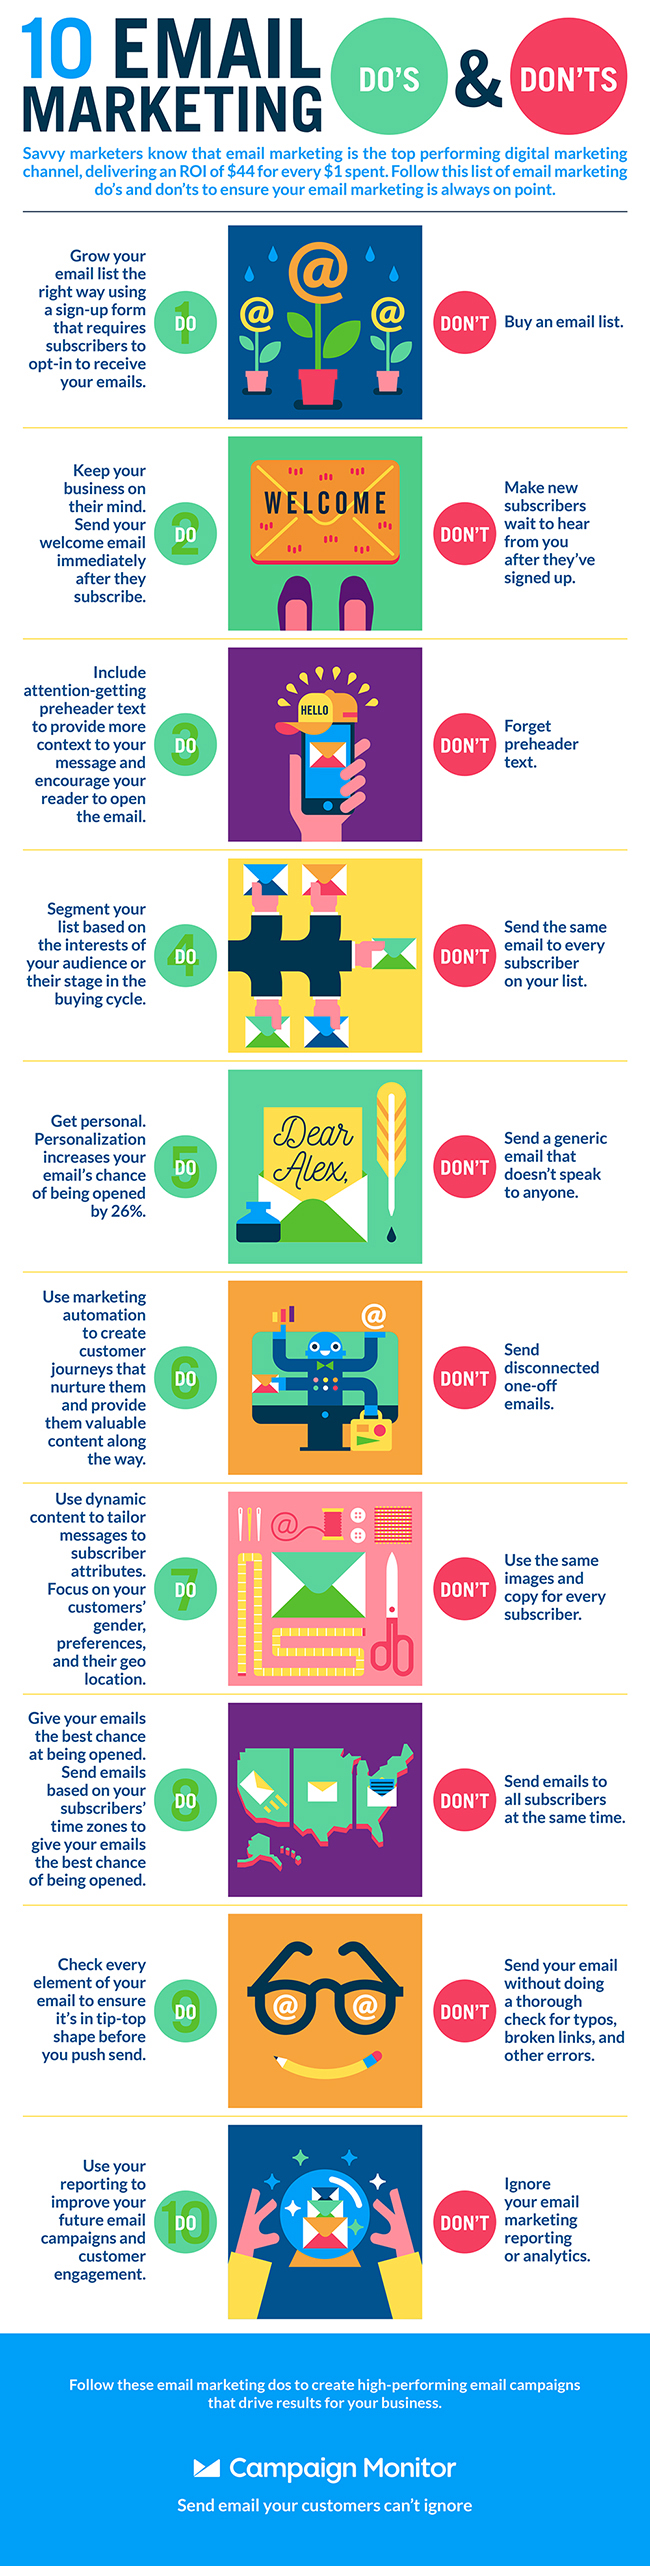 Infographic lists key email marketing tips